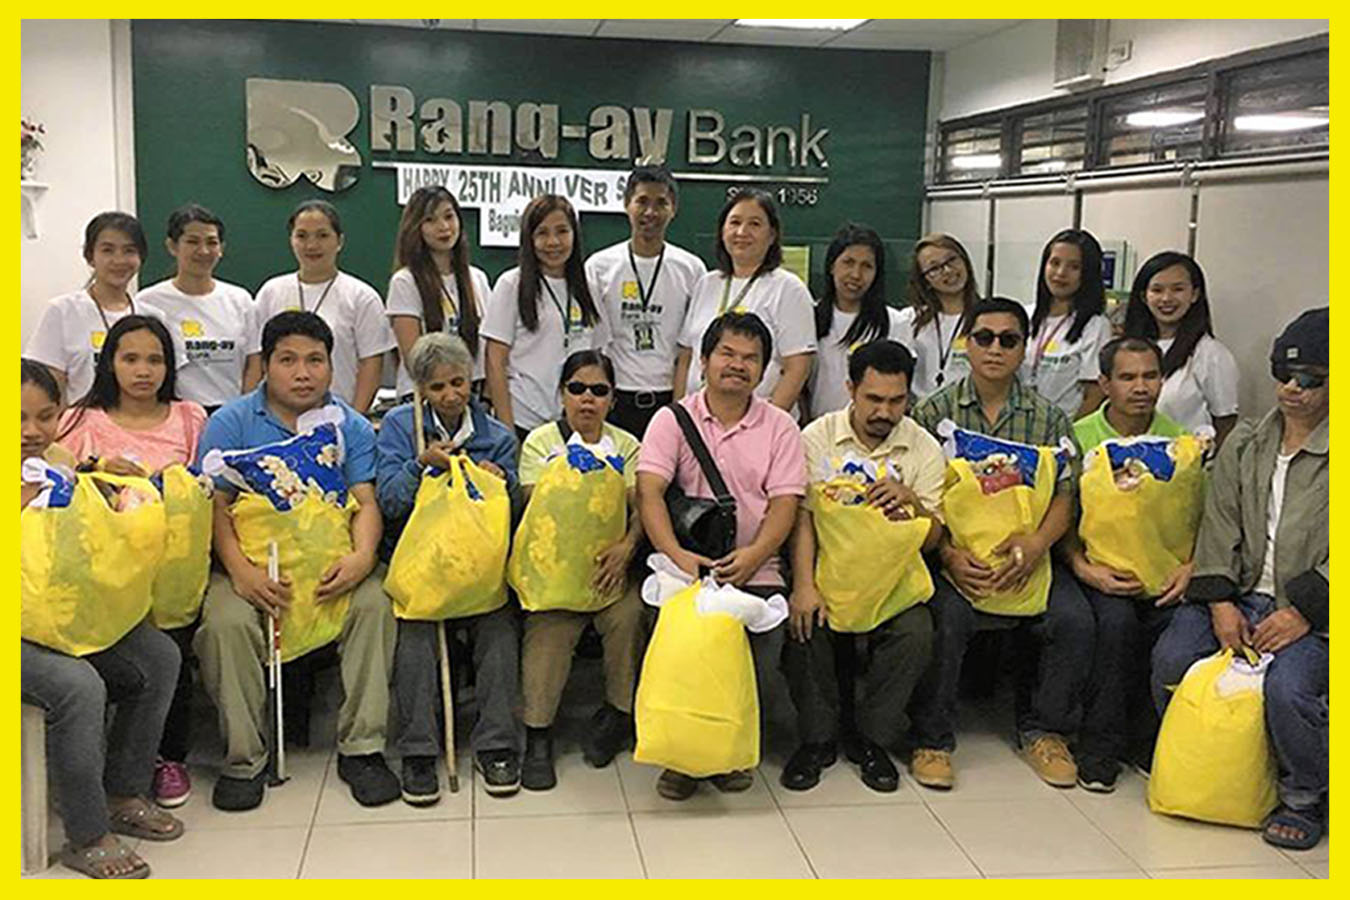 Rang-ay Baguio Branch Conducted a livelihood project for the blind therapists head by Rodolfo Majestrado.